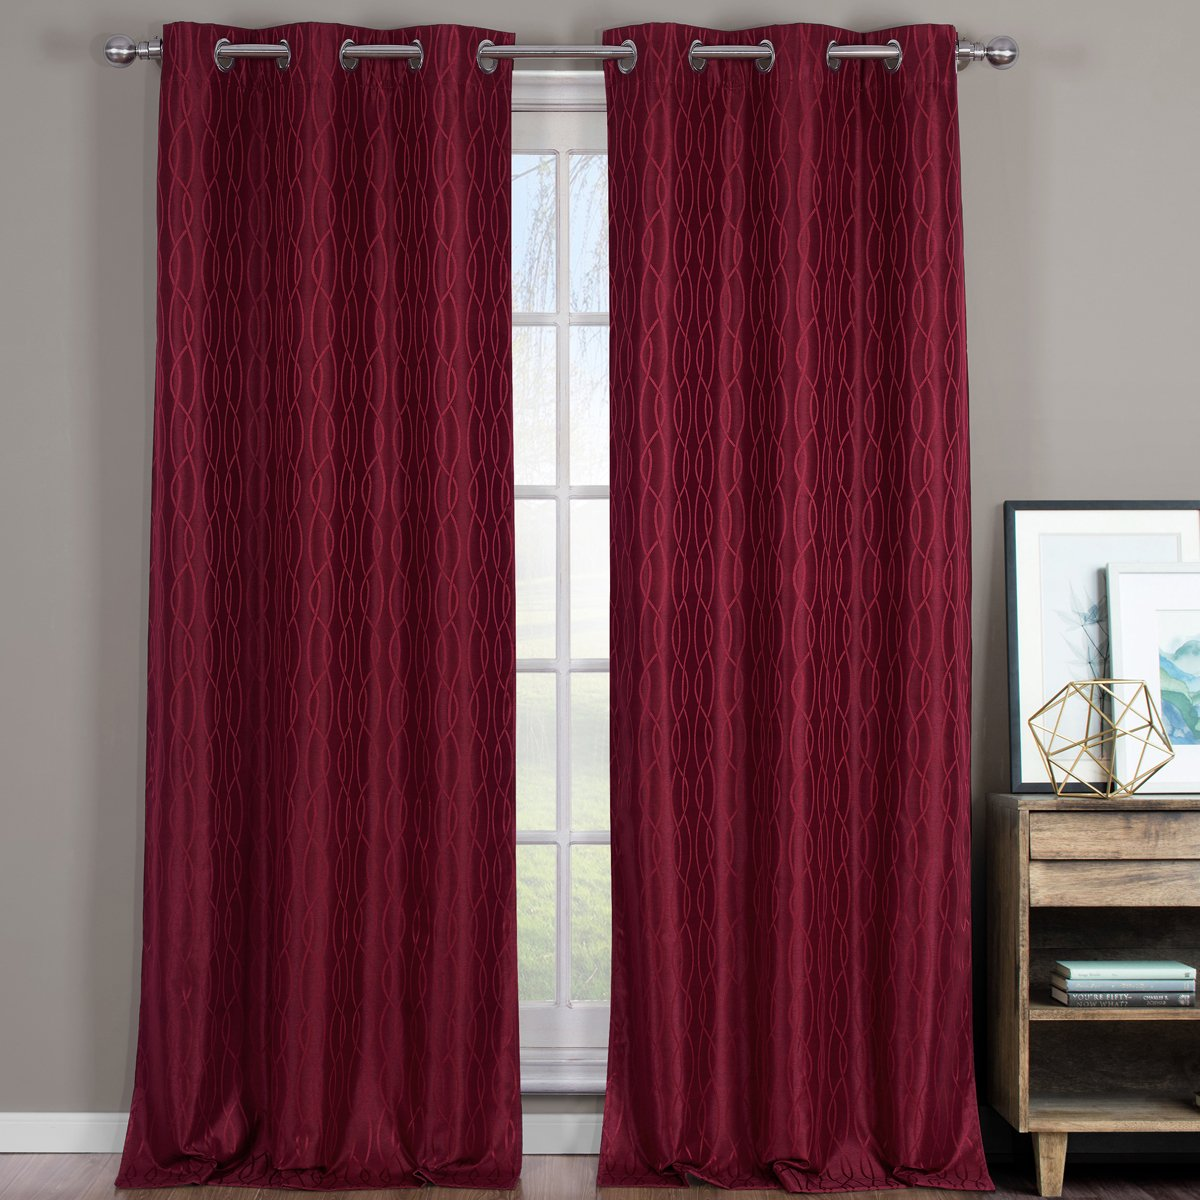 Voyage Jacquard Burgundy, Top Grommet Blackout Window Curtain Panels by Royal Hotel